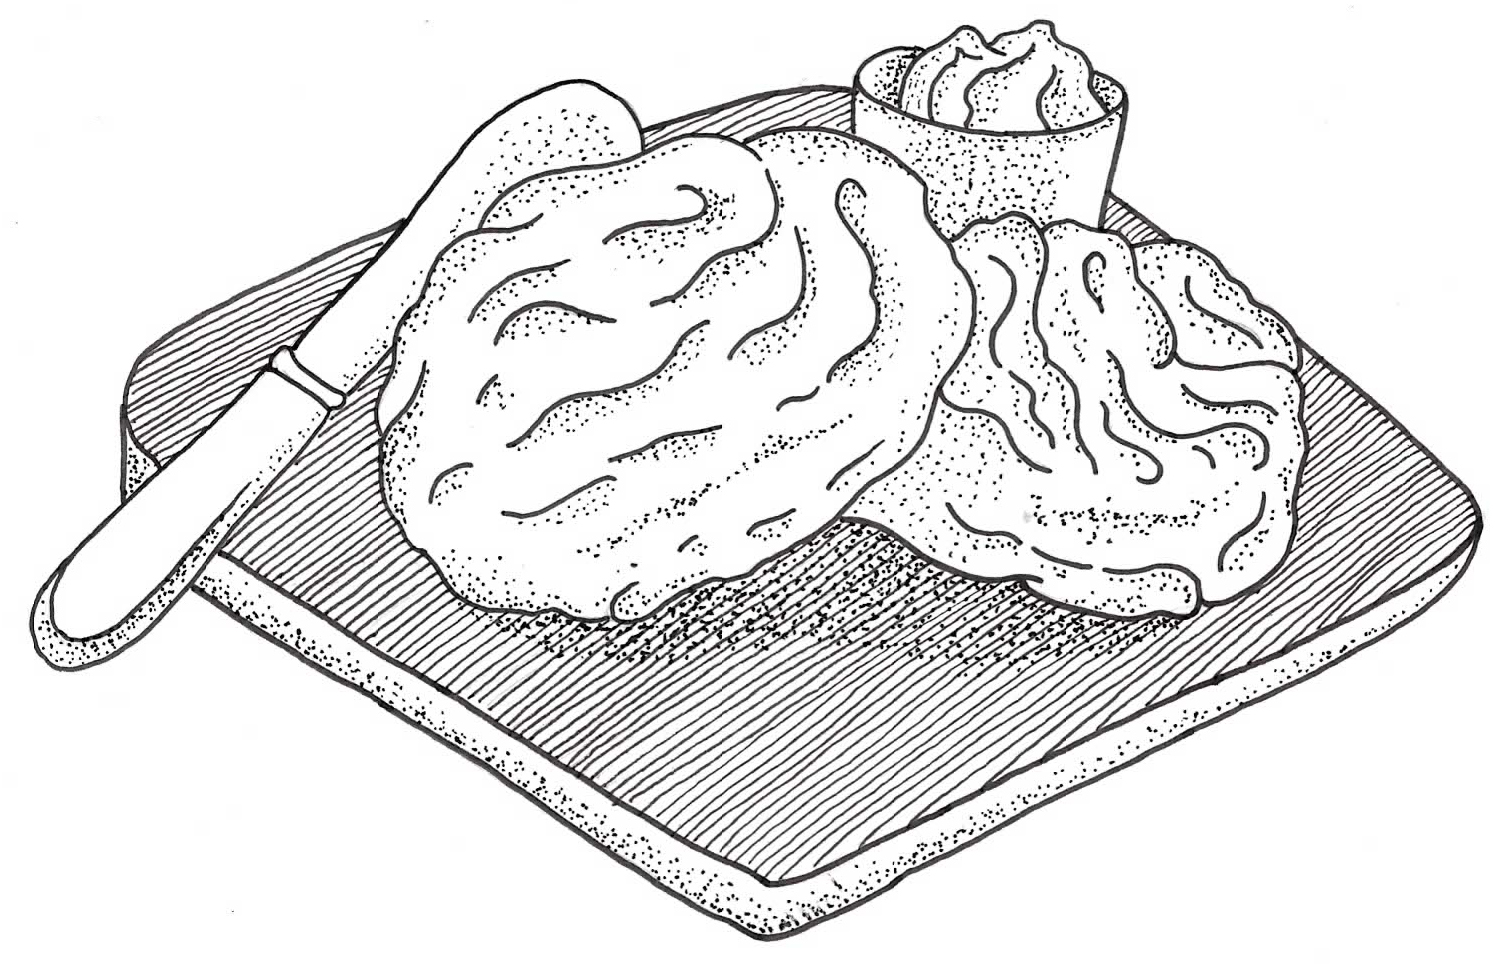 Biscuit Illustration